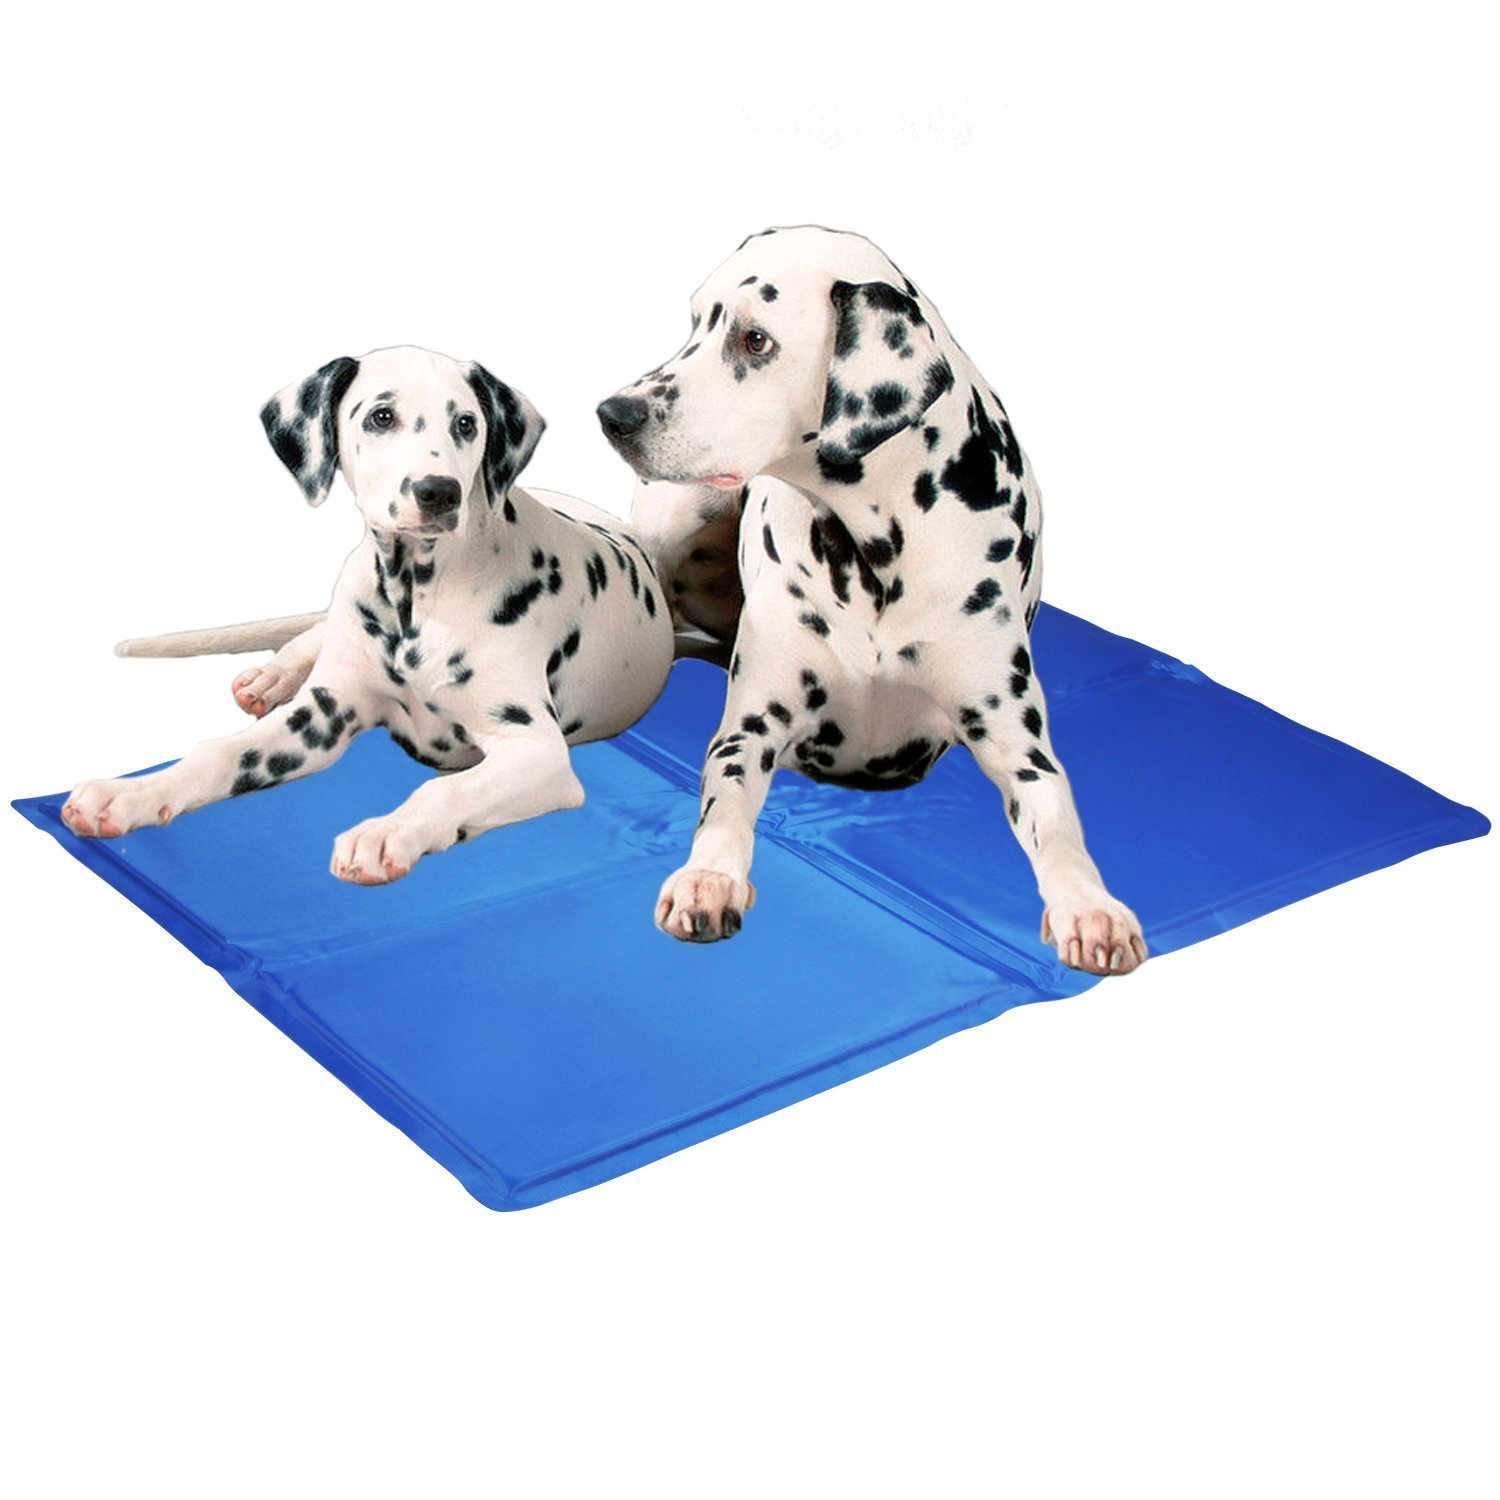 How to make the qualified pet cooling mat by lepet dog cooling mat manufacturer